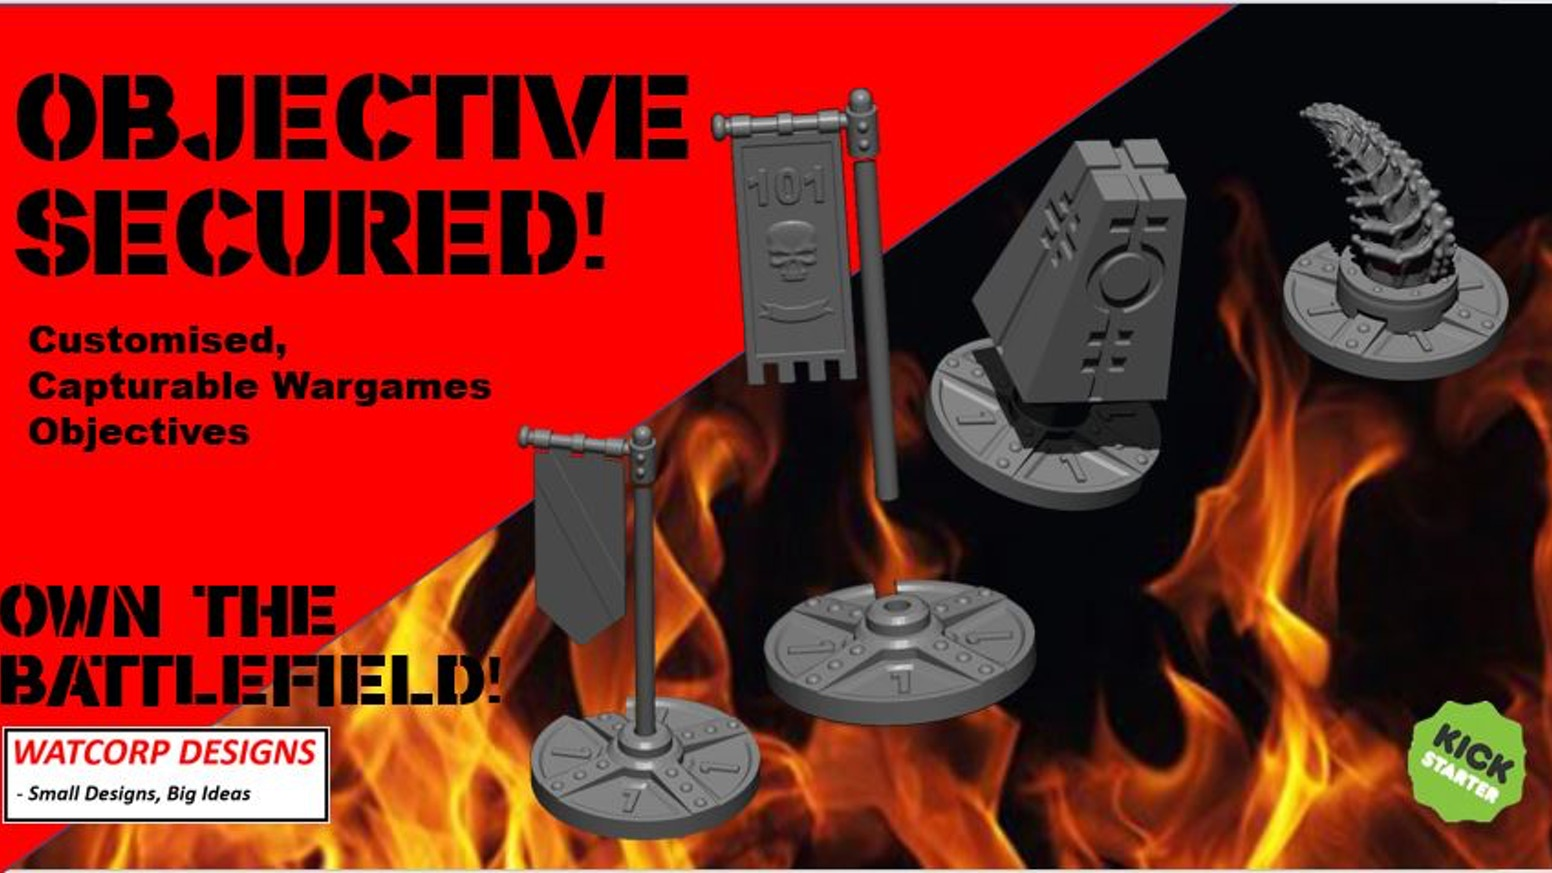 Capturable, Customisable Objectives for Wargames